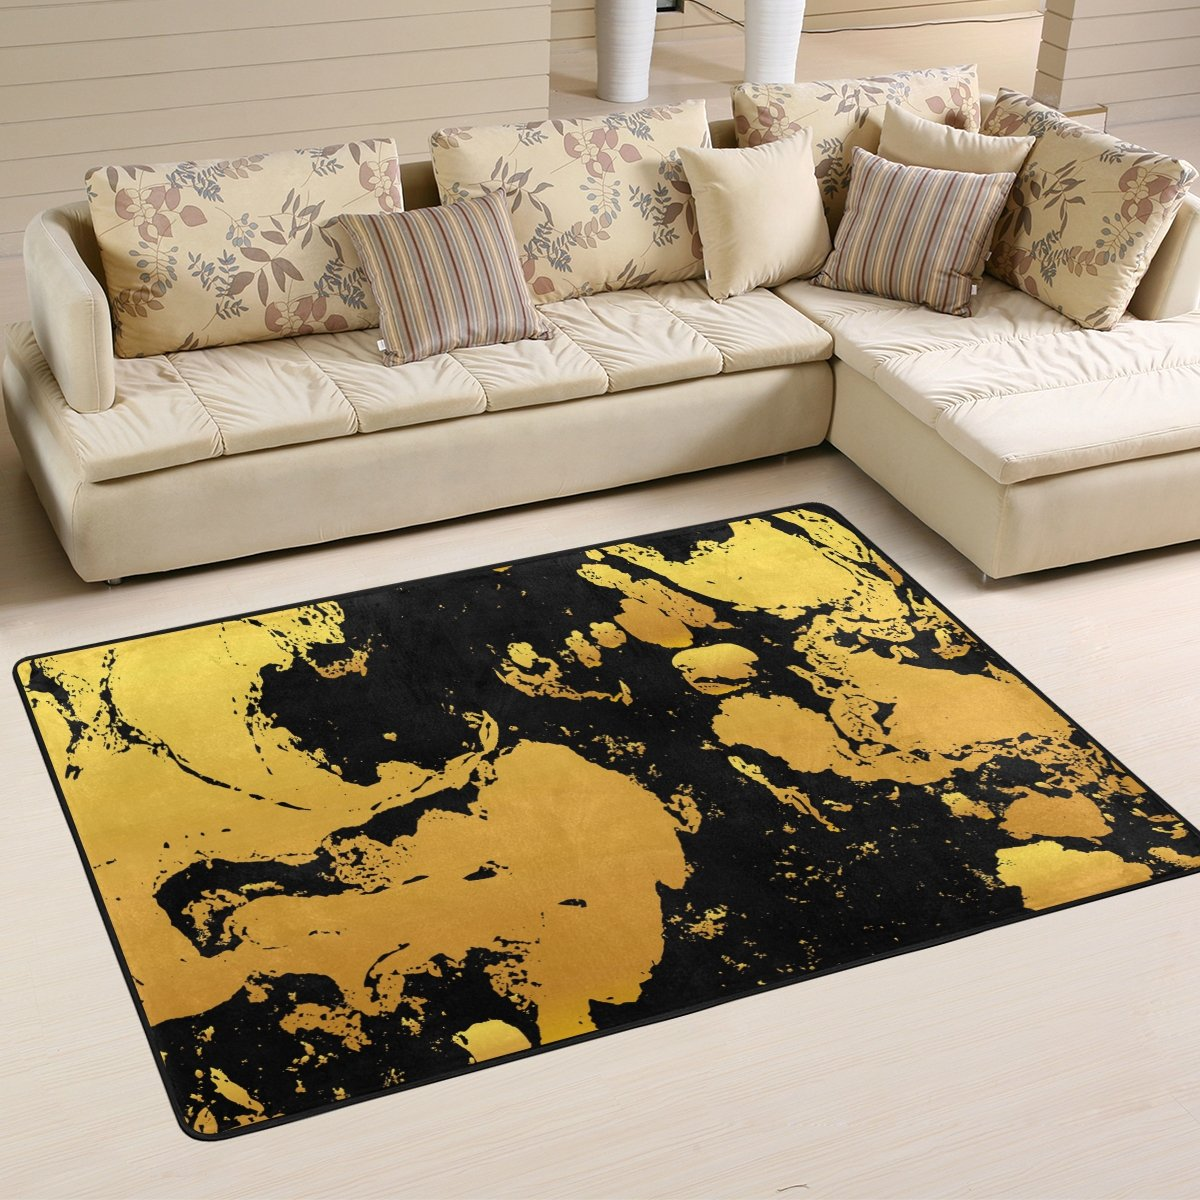 SAVSV 3' x 2' Area Rug Carpet Doormat Lightweight Printed Gold And Black Ink Pattern Easy to Clean For Living Room Bedroom